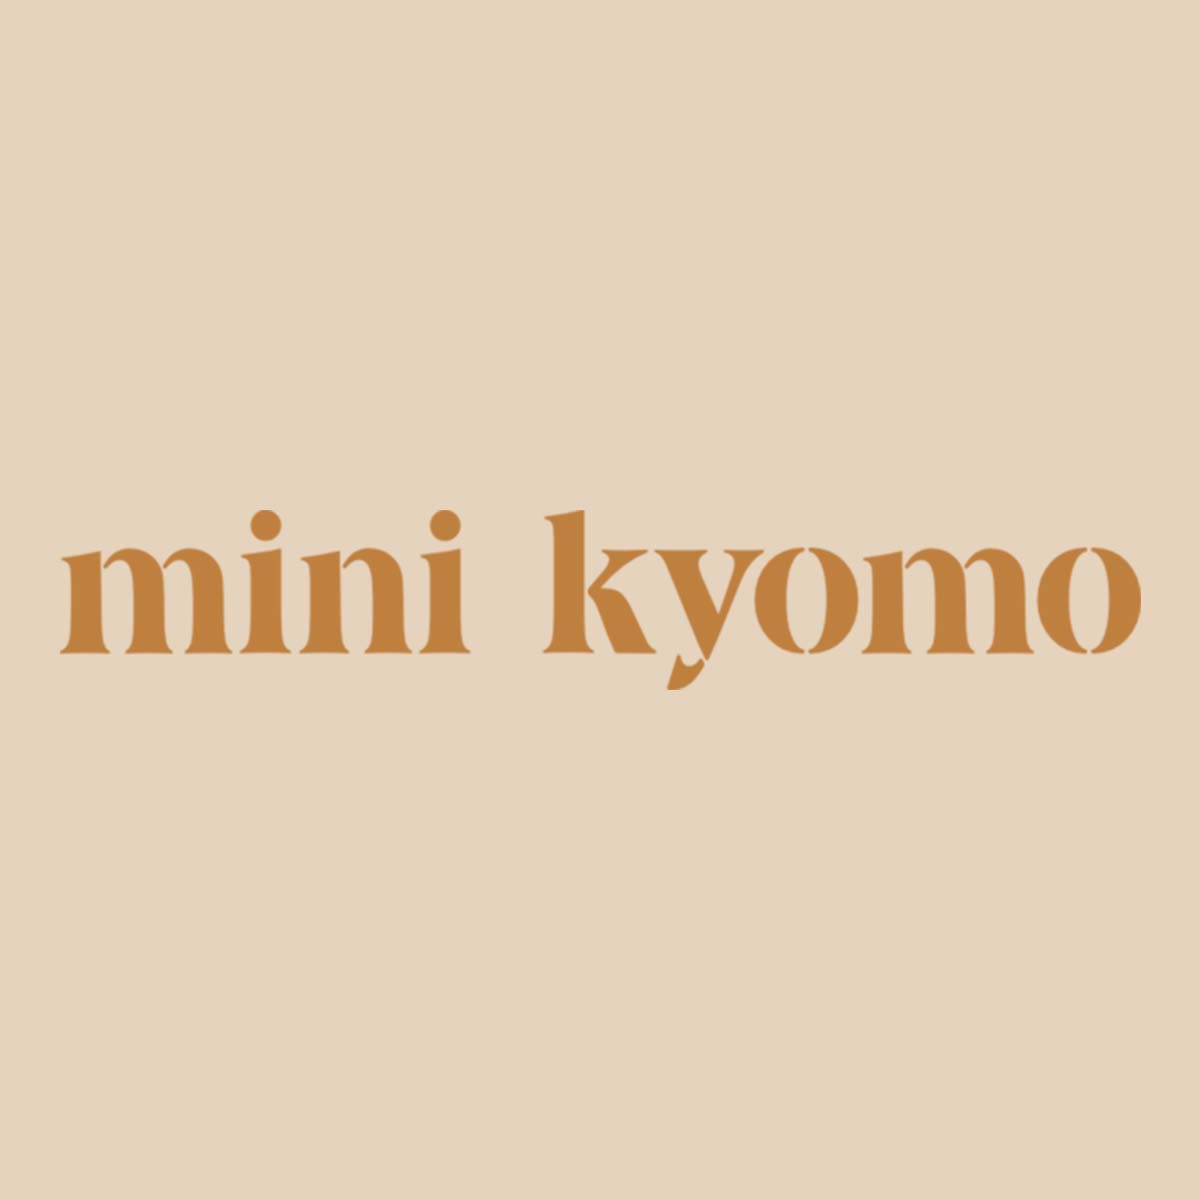 Mini Kyomo - Categorie Afbeelding